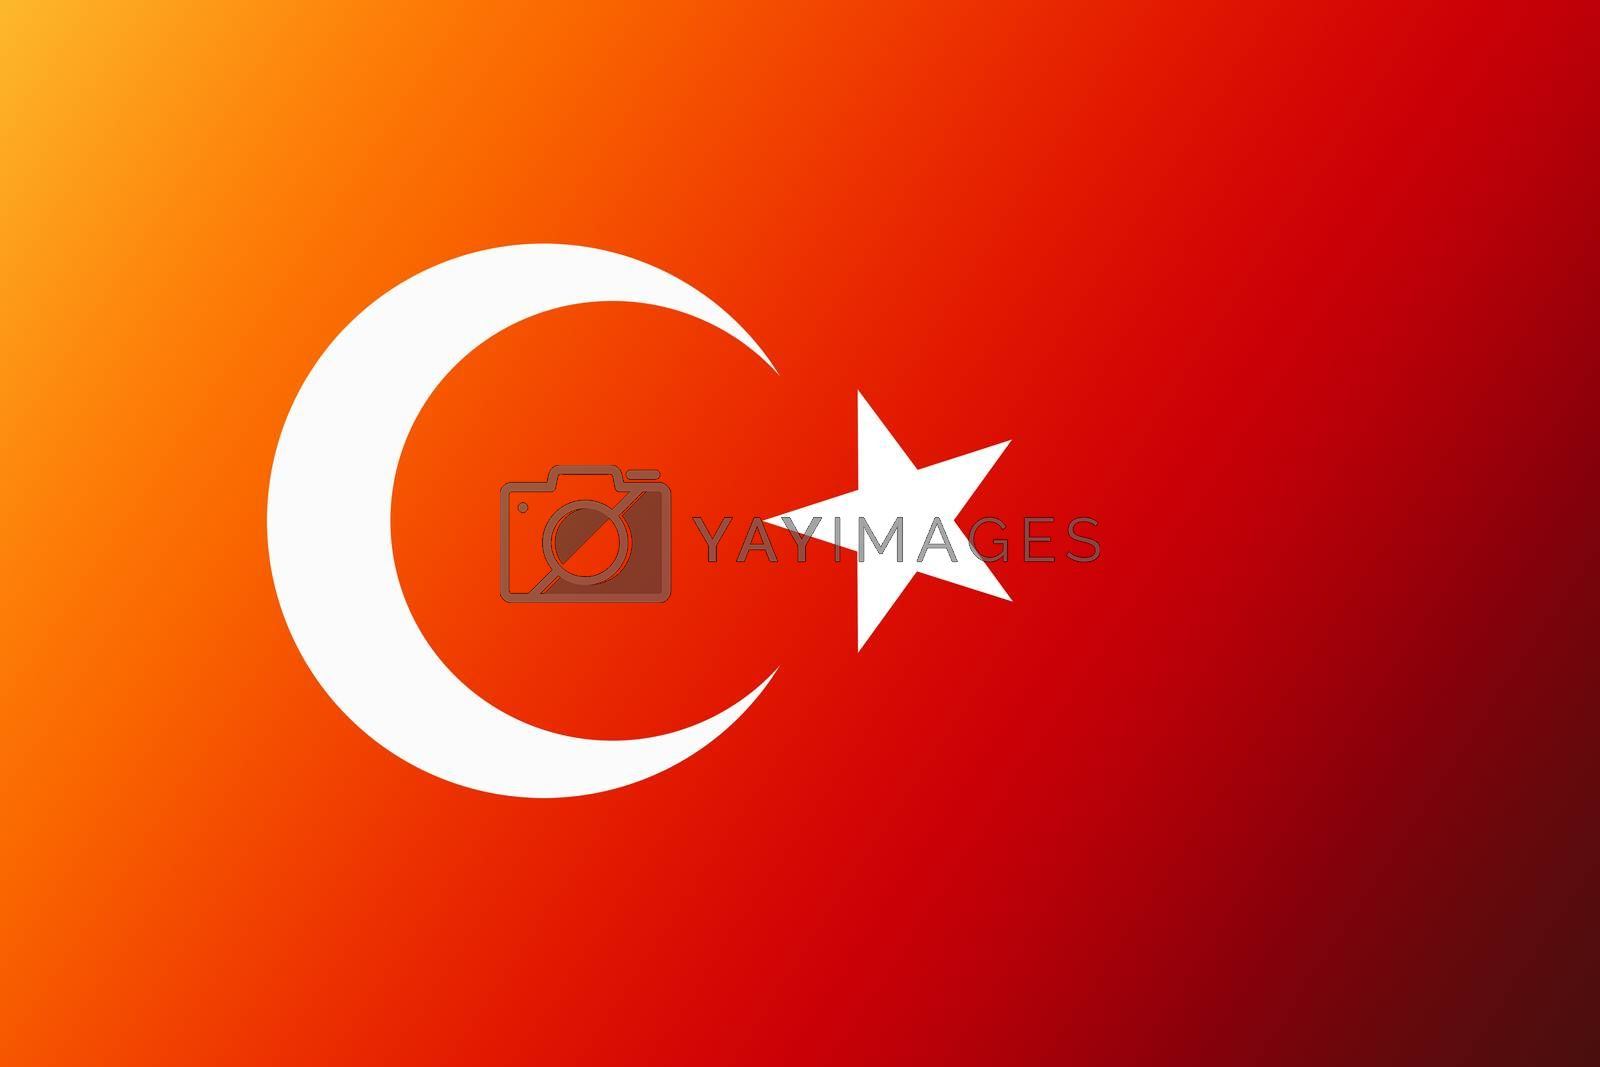 Turkish national flag with white star and moon on red background by berkay